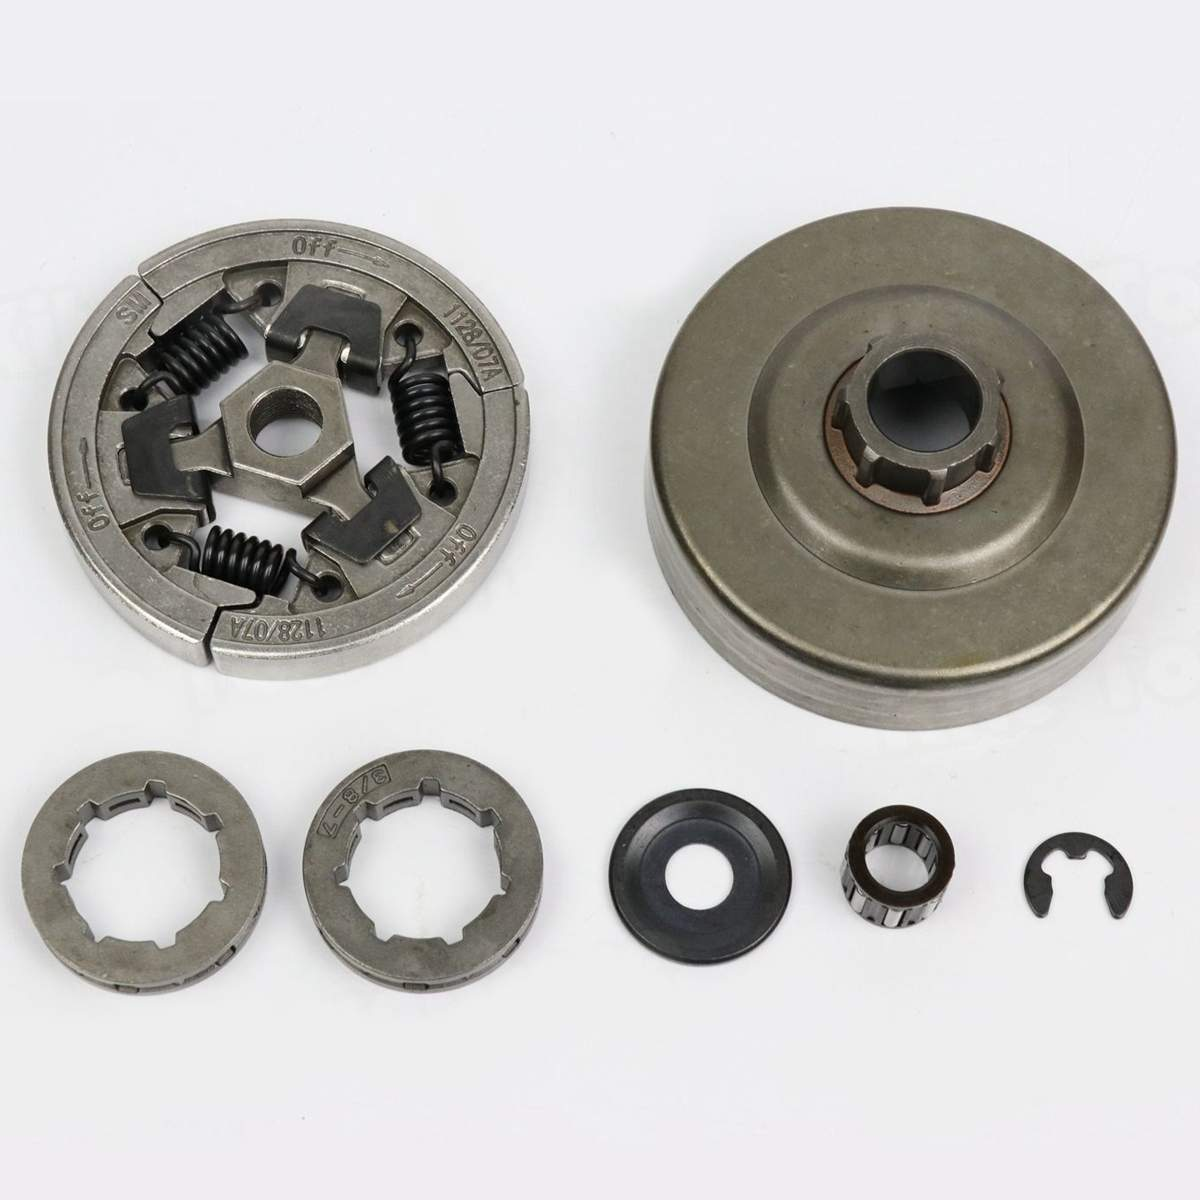 7Pcs 3/8'' Clutch Drum Rim Sprocket Bearing Kit For Stihl 036 MS360 Chainsaw Clutch Drum Rim Sprocket Bearing Chainsaw Tool Part